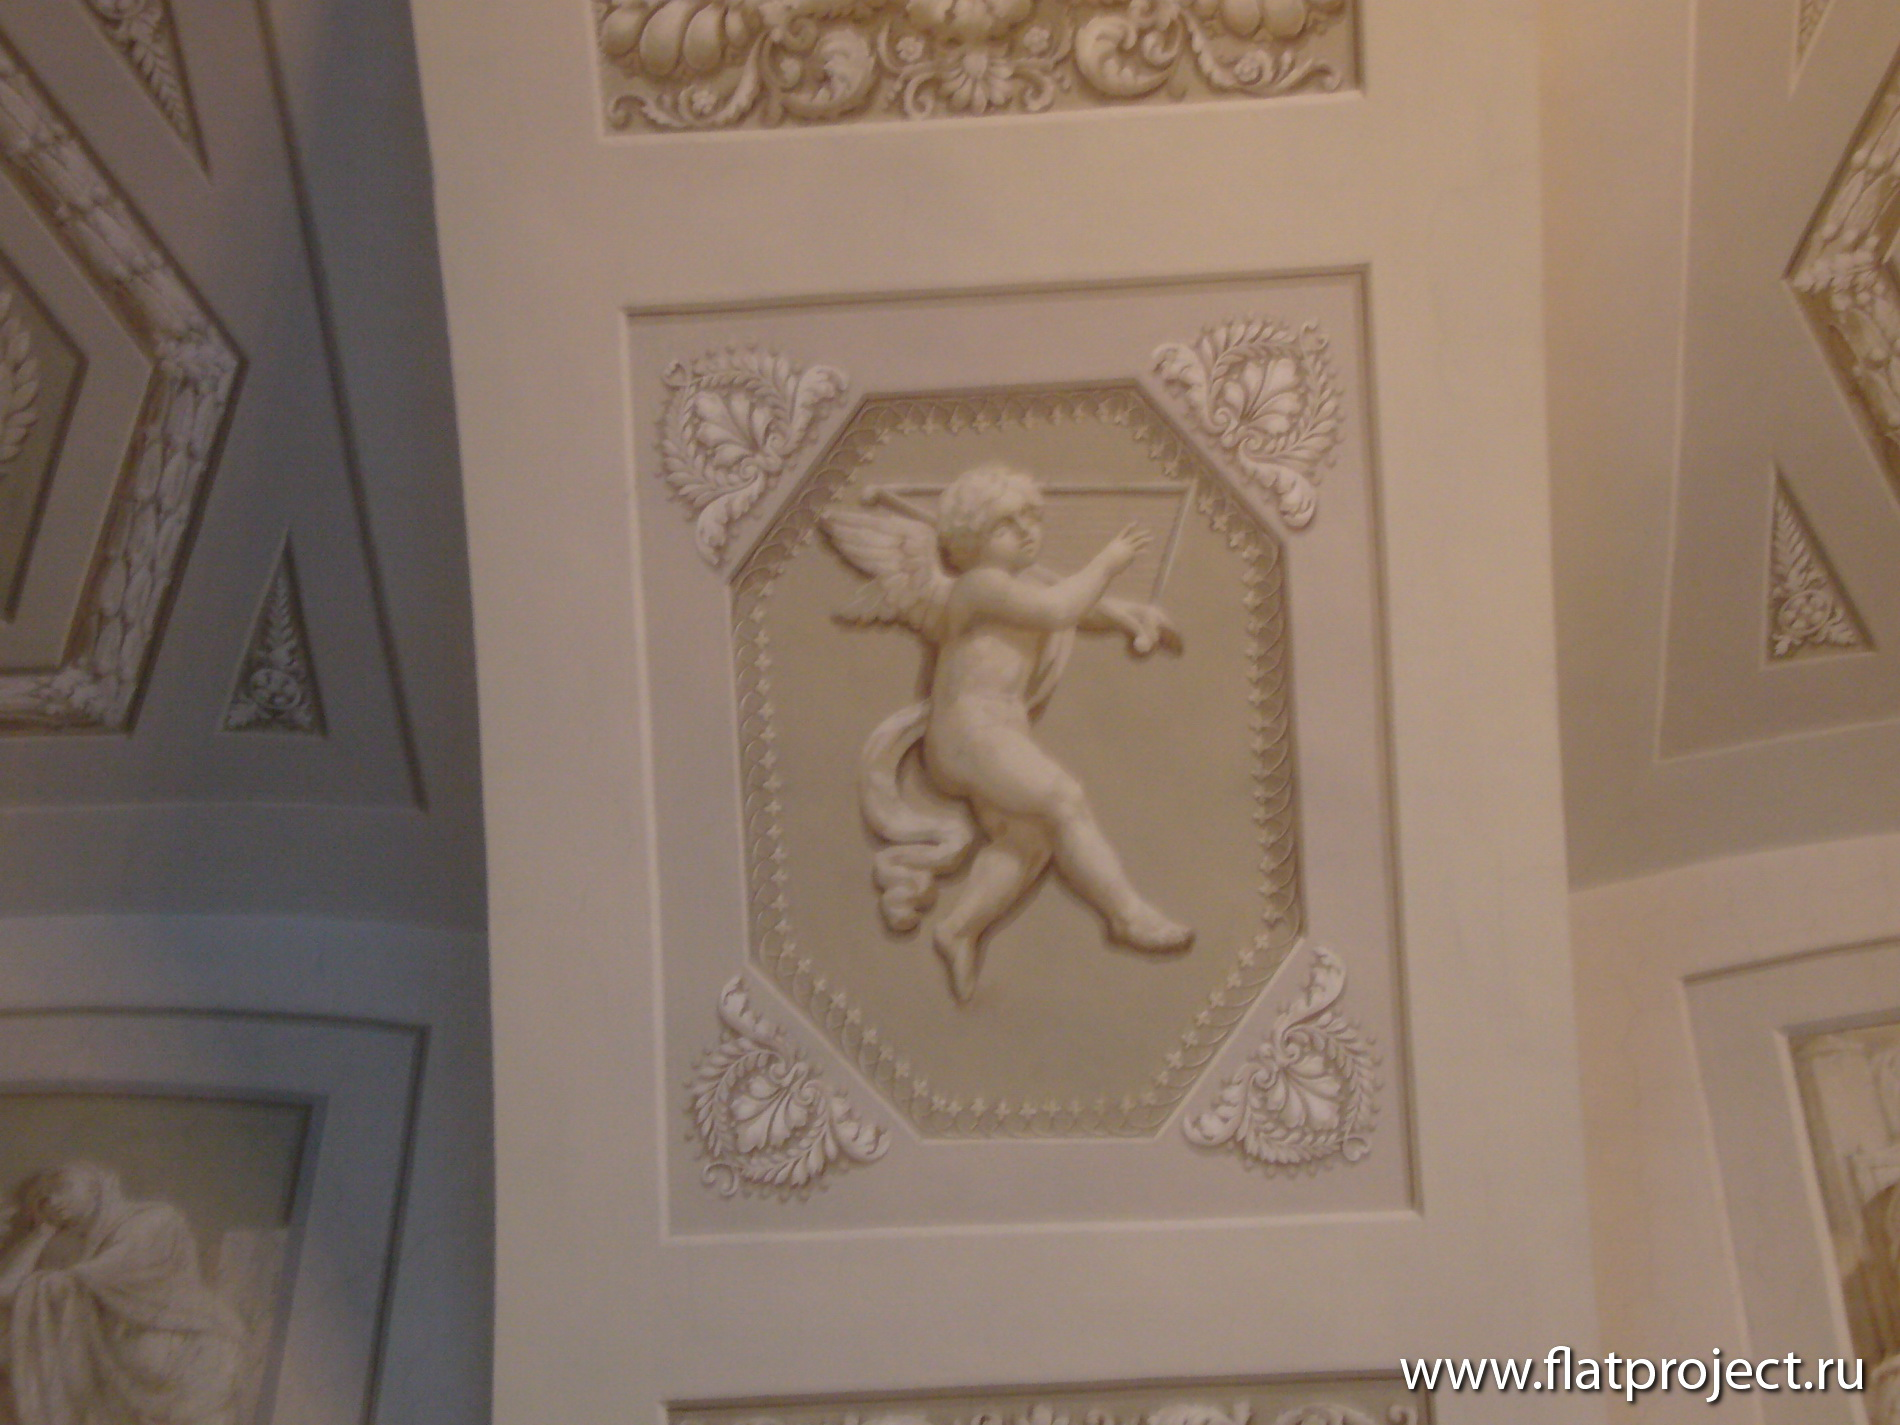 The State Russian museum interiors – photo 136